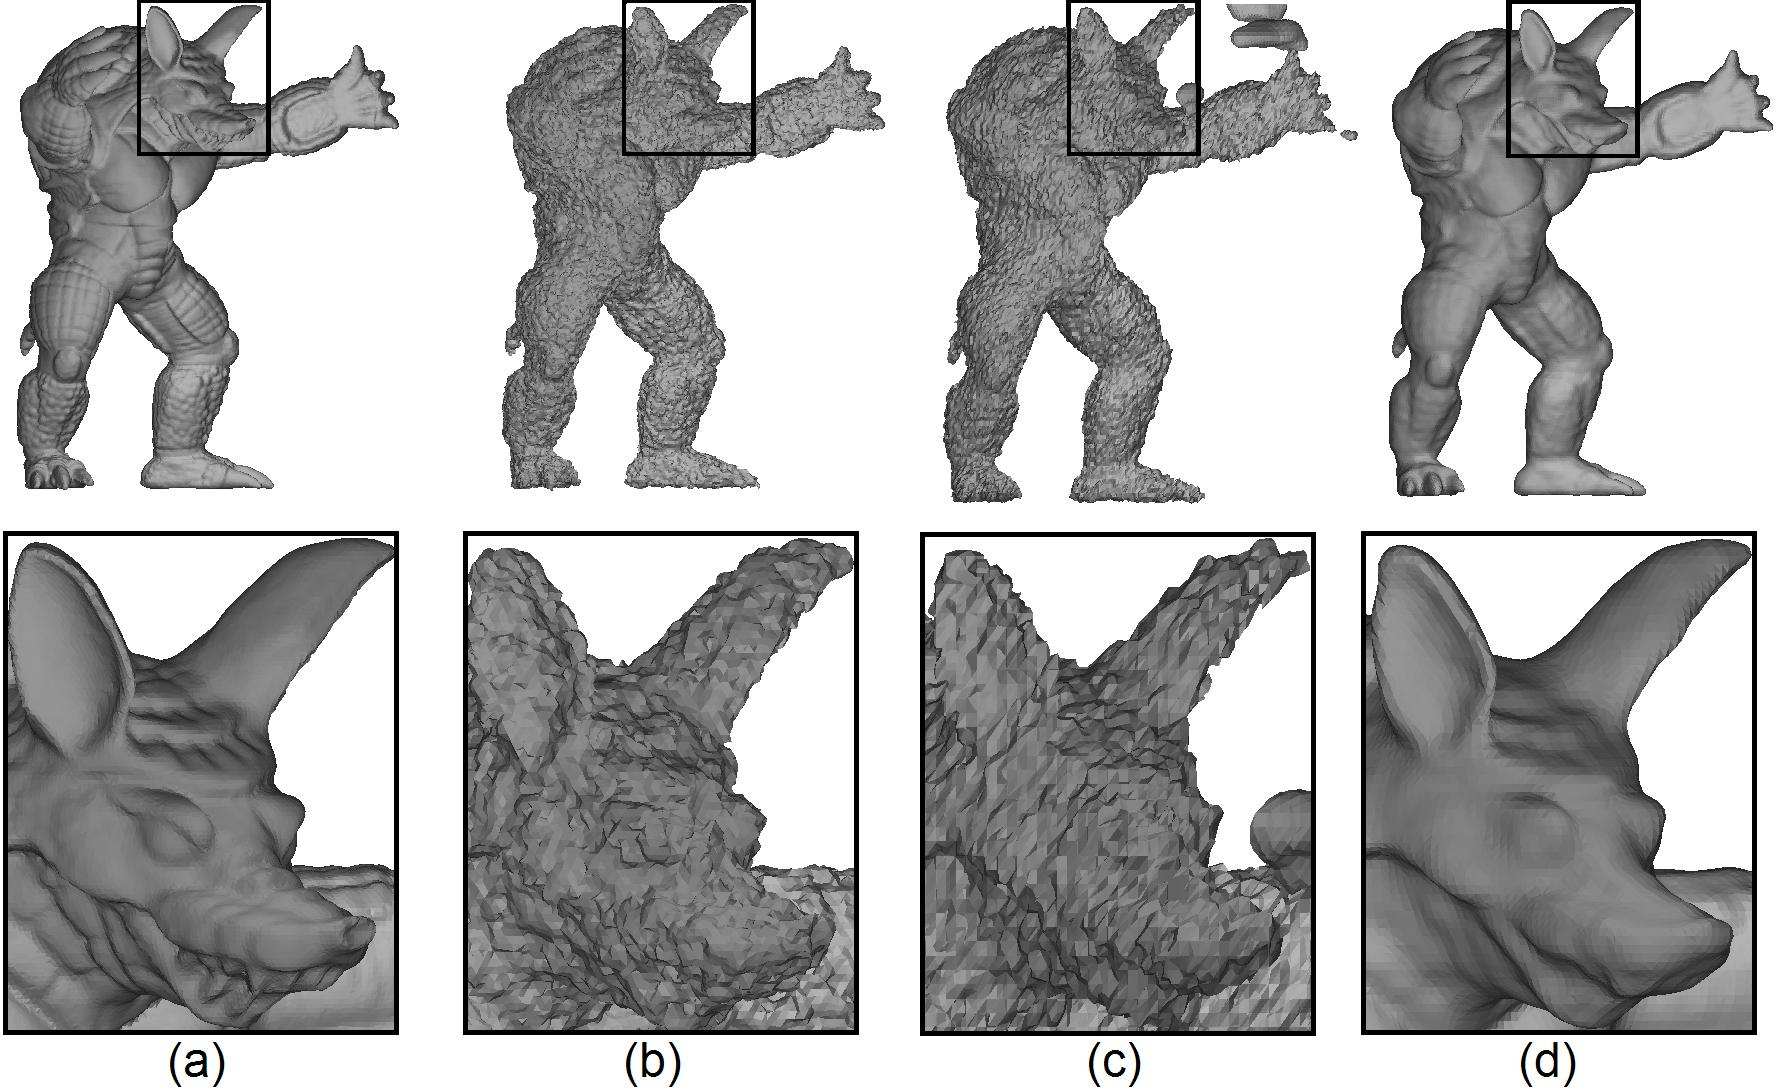 M. Kazhdan / Reconstruction of Solid Models Figure 9: A non-uniform sampling of points from the human pelvis (a) and the reconstructions obtained using Radial Basis Functions (b), Partition of Unity